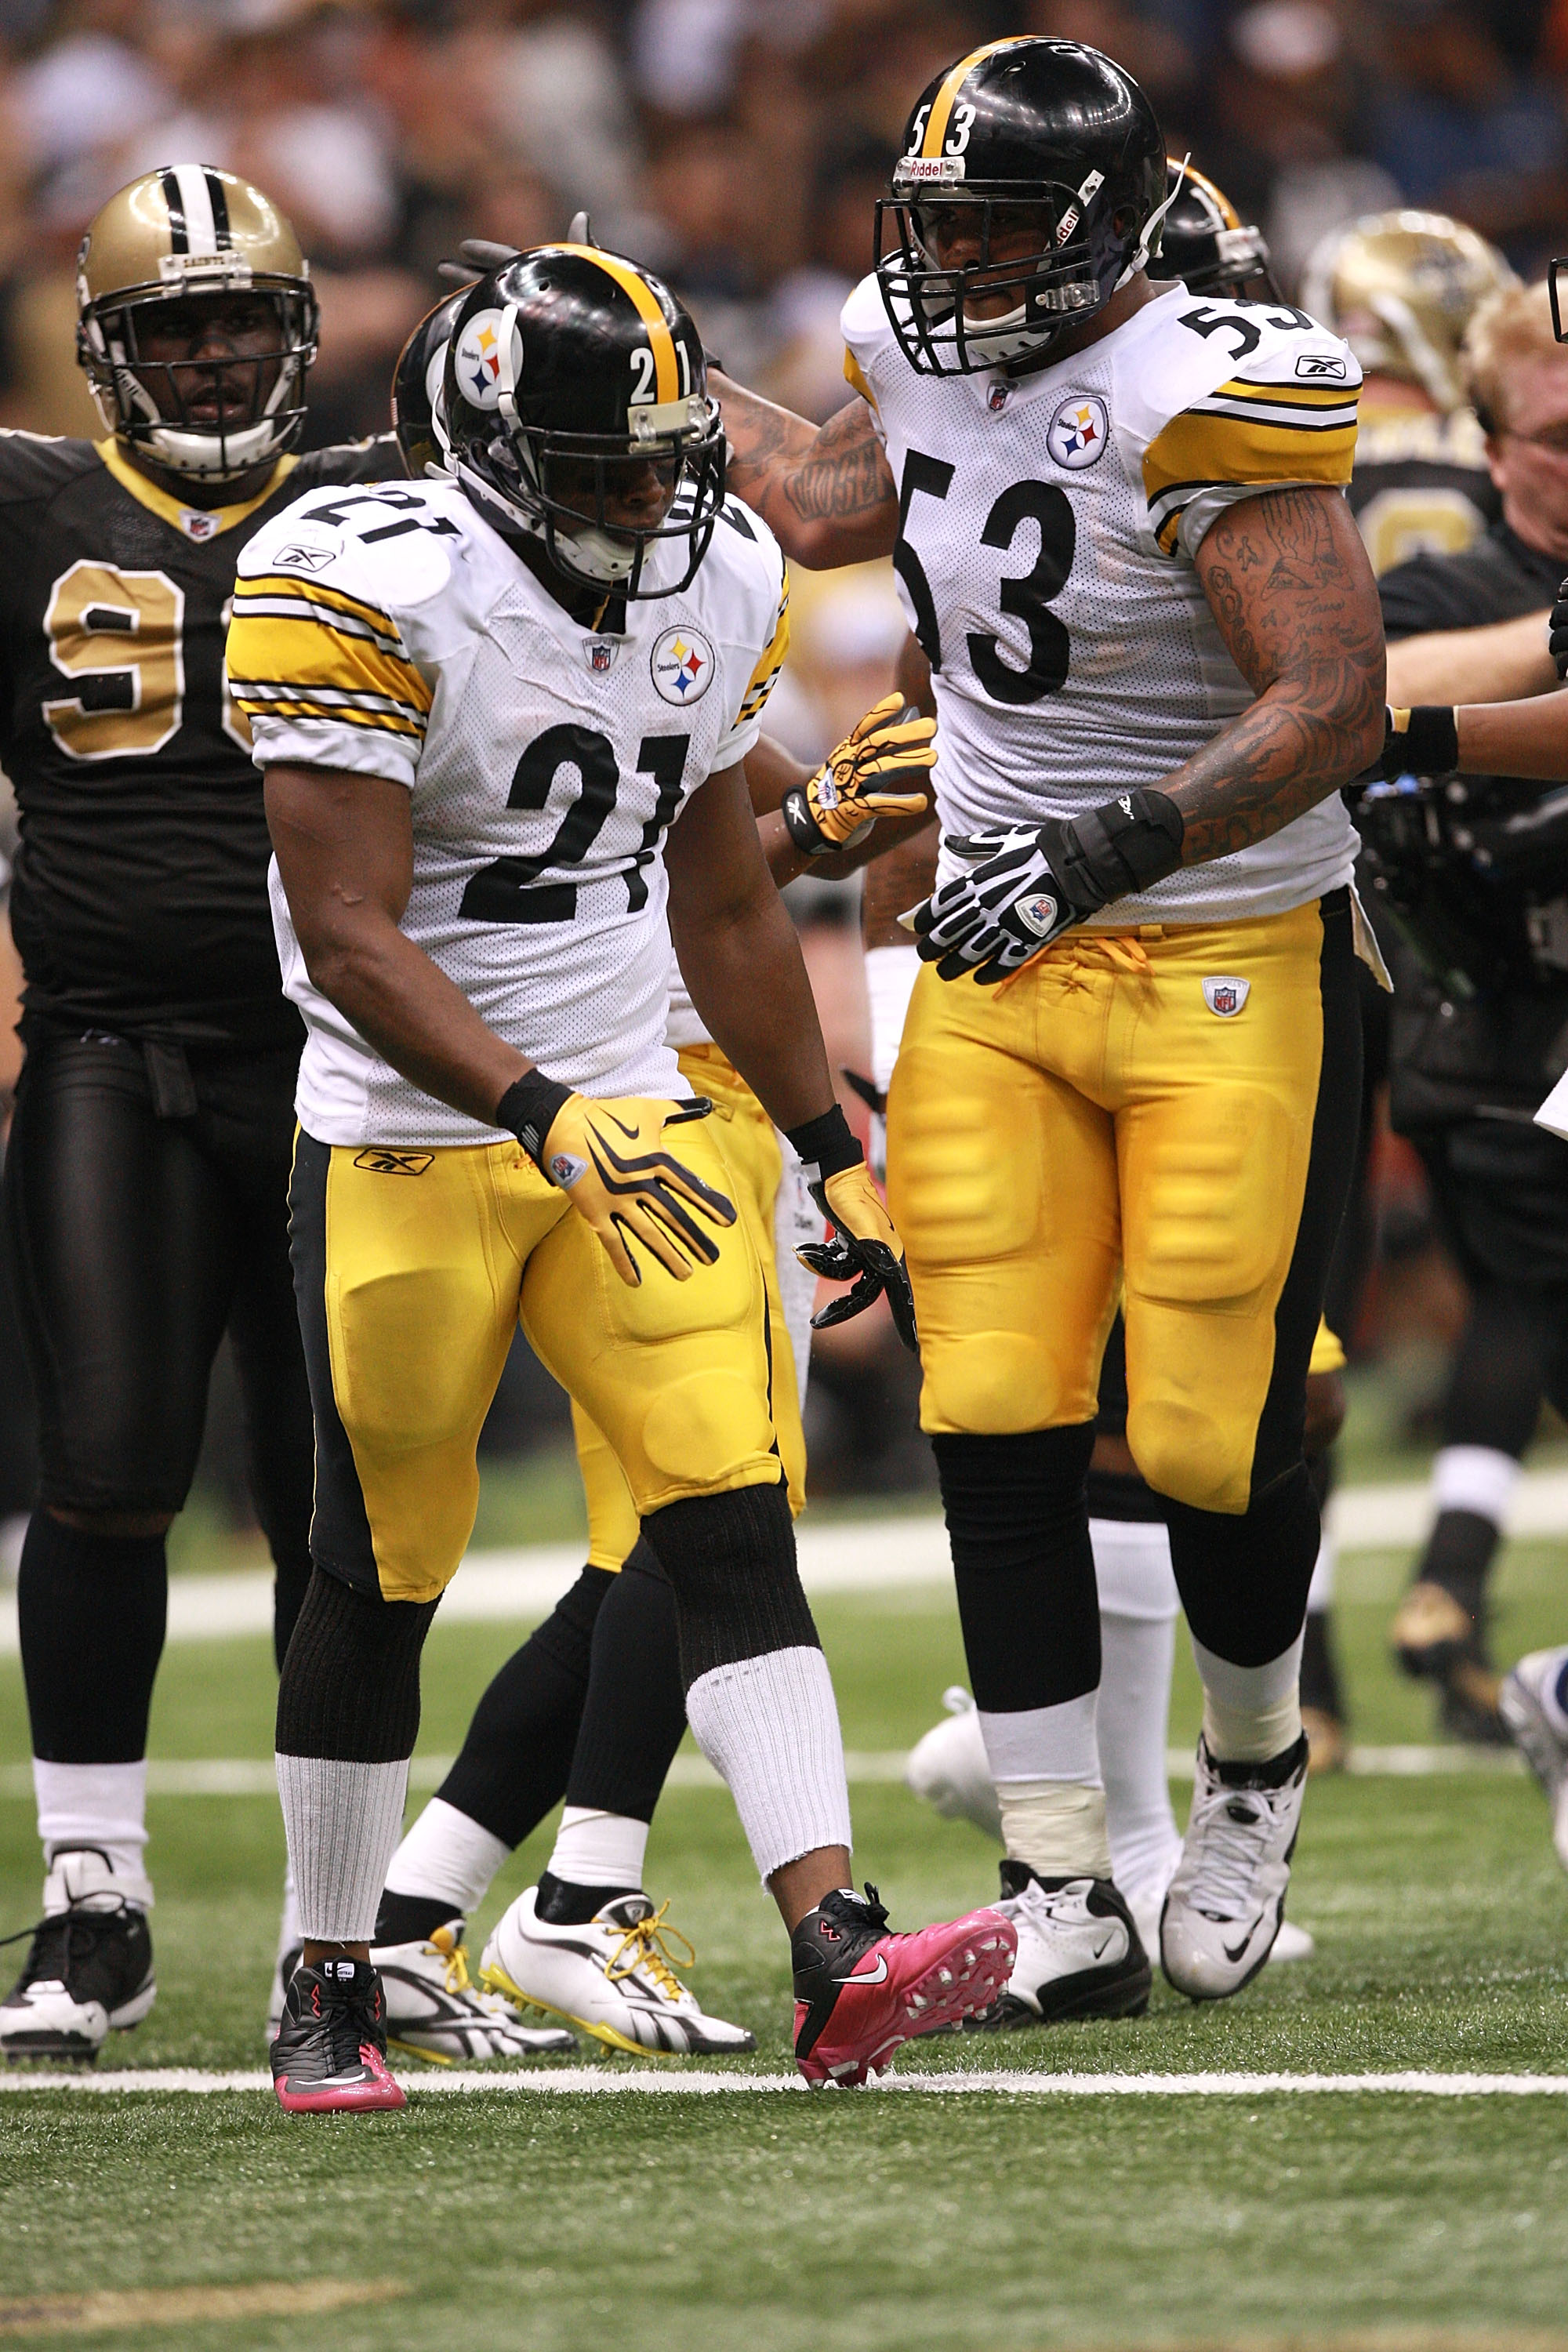 NEW ORLEANS - OCTOBER 31:  Maurkice Pouncey #53 congratulates Mewelde Moore #21 of the Pittsburgh Steelers during their game against the New Orleans Saints at Louisiana Superdome on October 31, 2010 in New Orleans, Louisiana.  The Saints won 20-10 over th